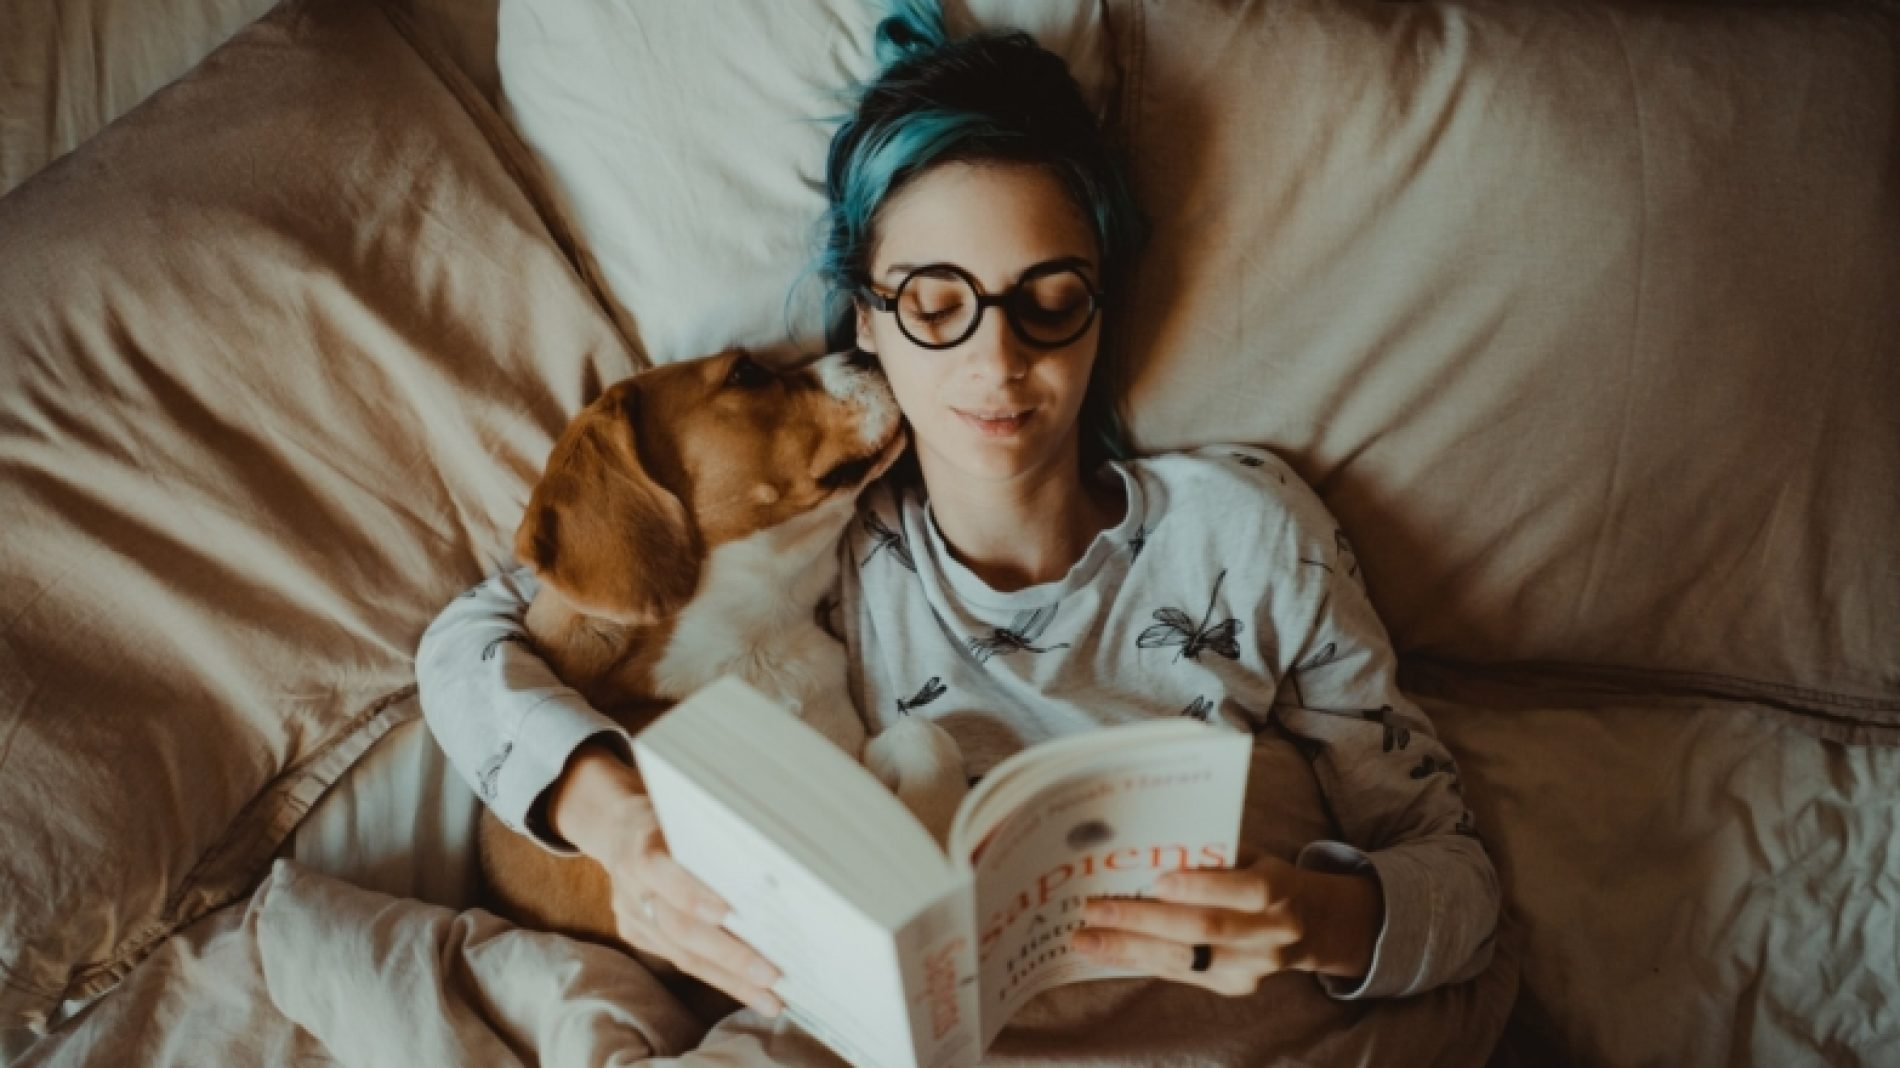 Young-person-reading-in-bed-CADNSy